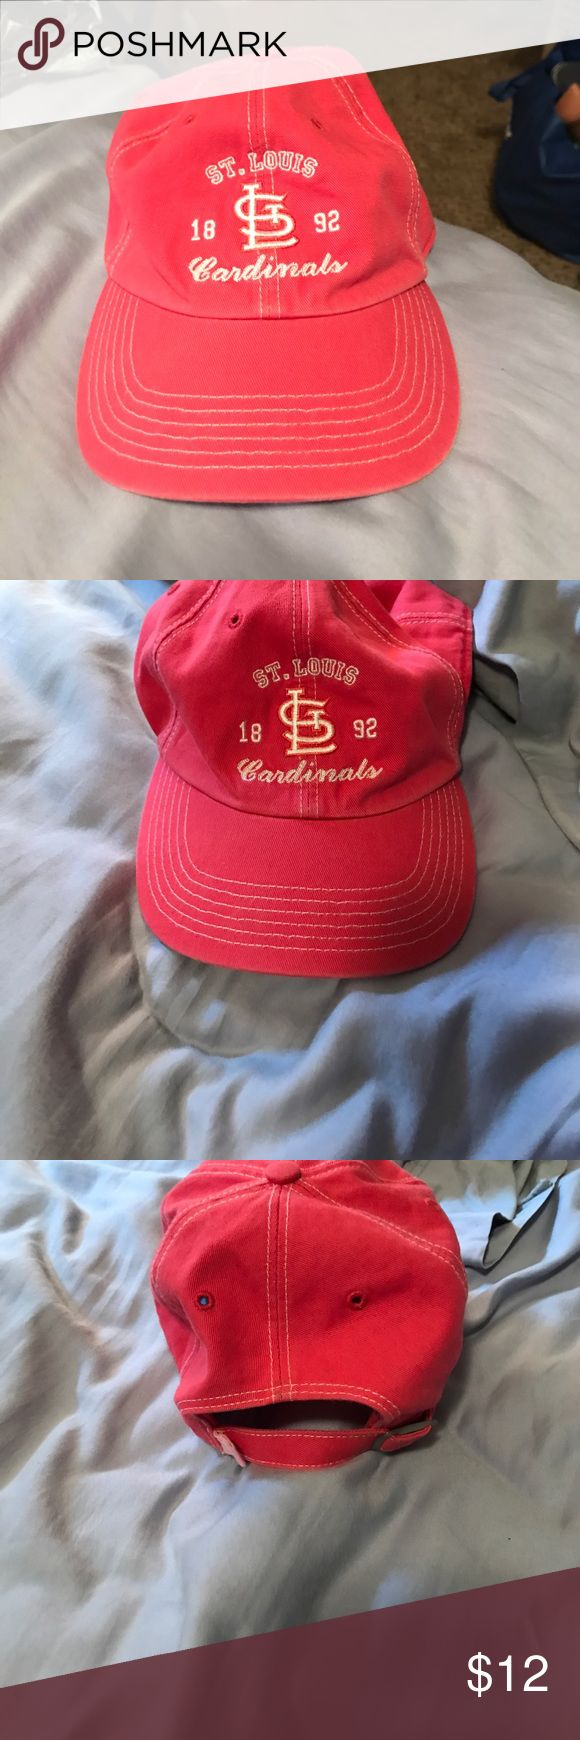 Pink stl cardinals hat SPORT GYM DEALS NOW Adjustable. Kinda pinkish coralish color. All reasonable offers are considered n a discount is given upon any bundle sold. Accessories Hats